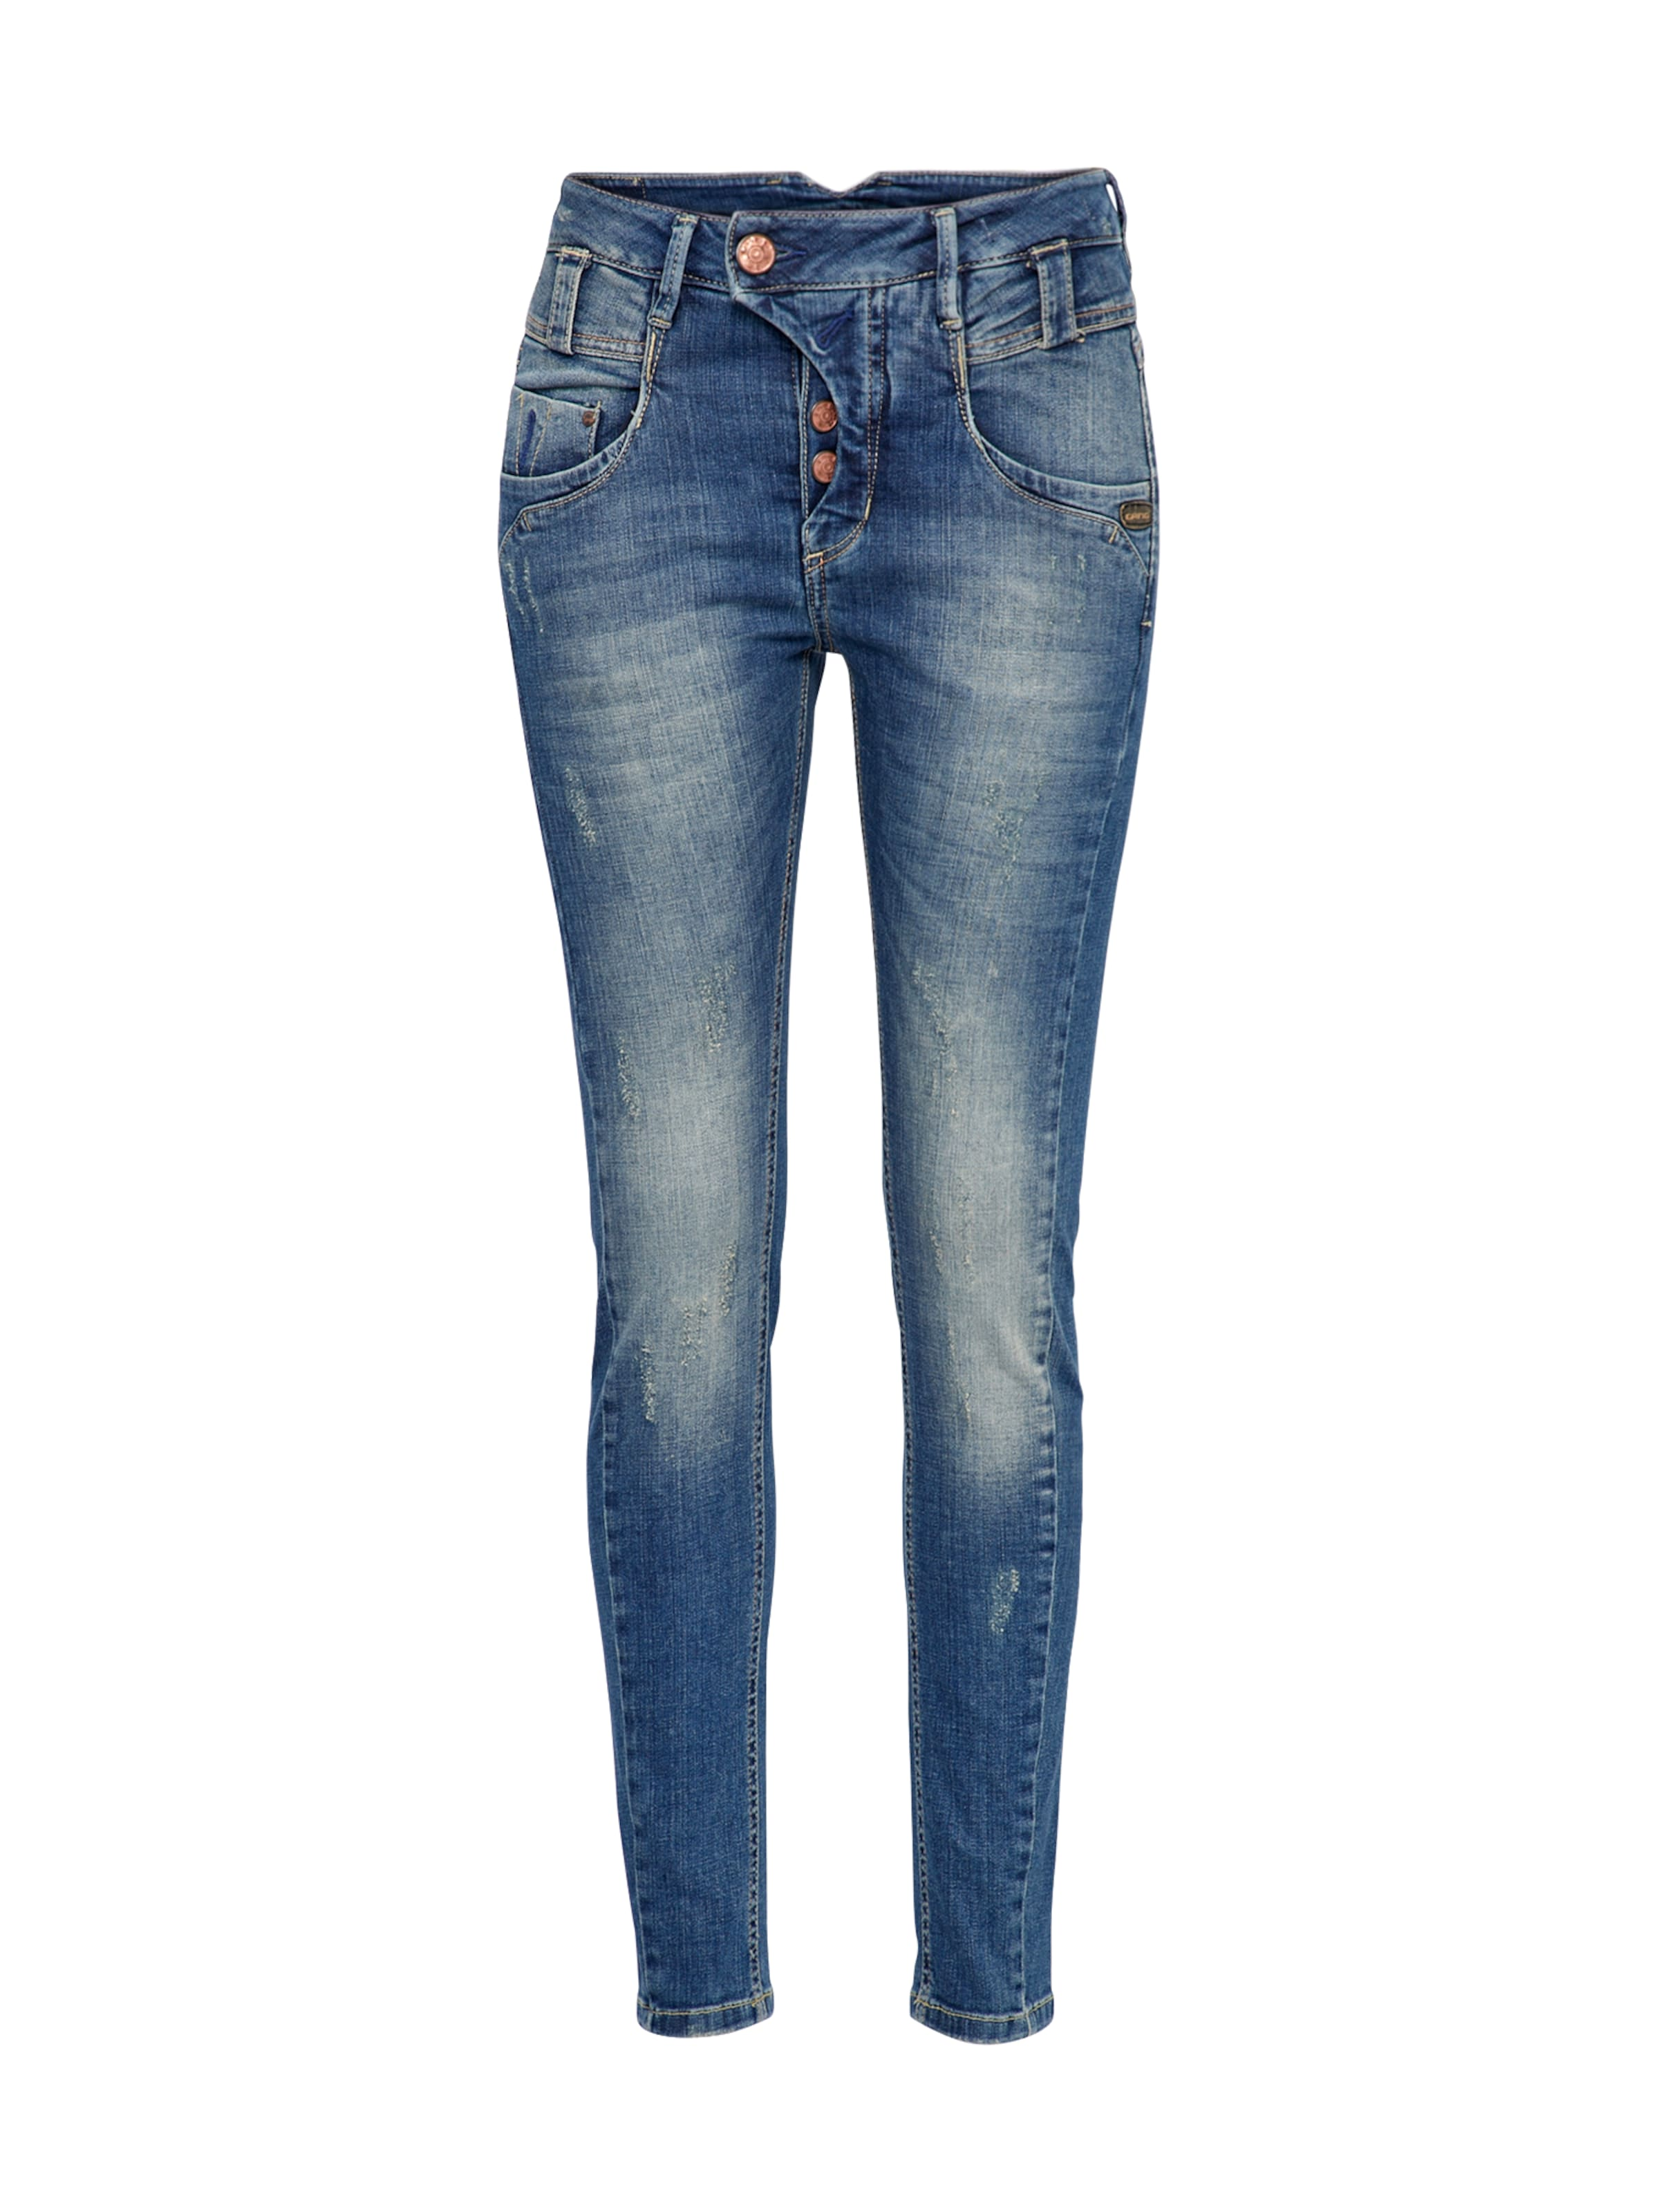 Denim Gang Jeans Blue In 'marge' q3ARL5c4j